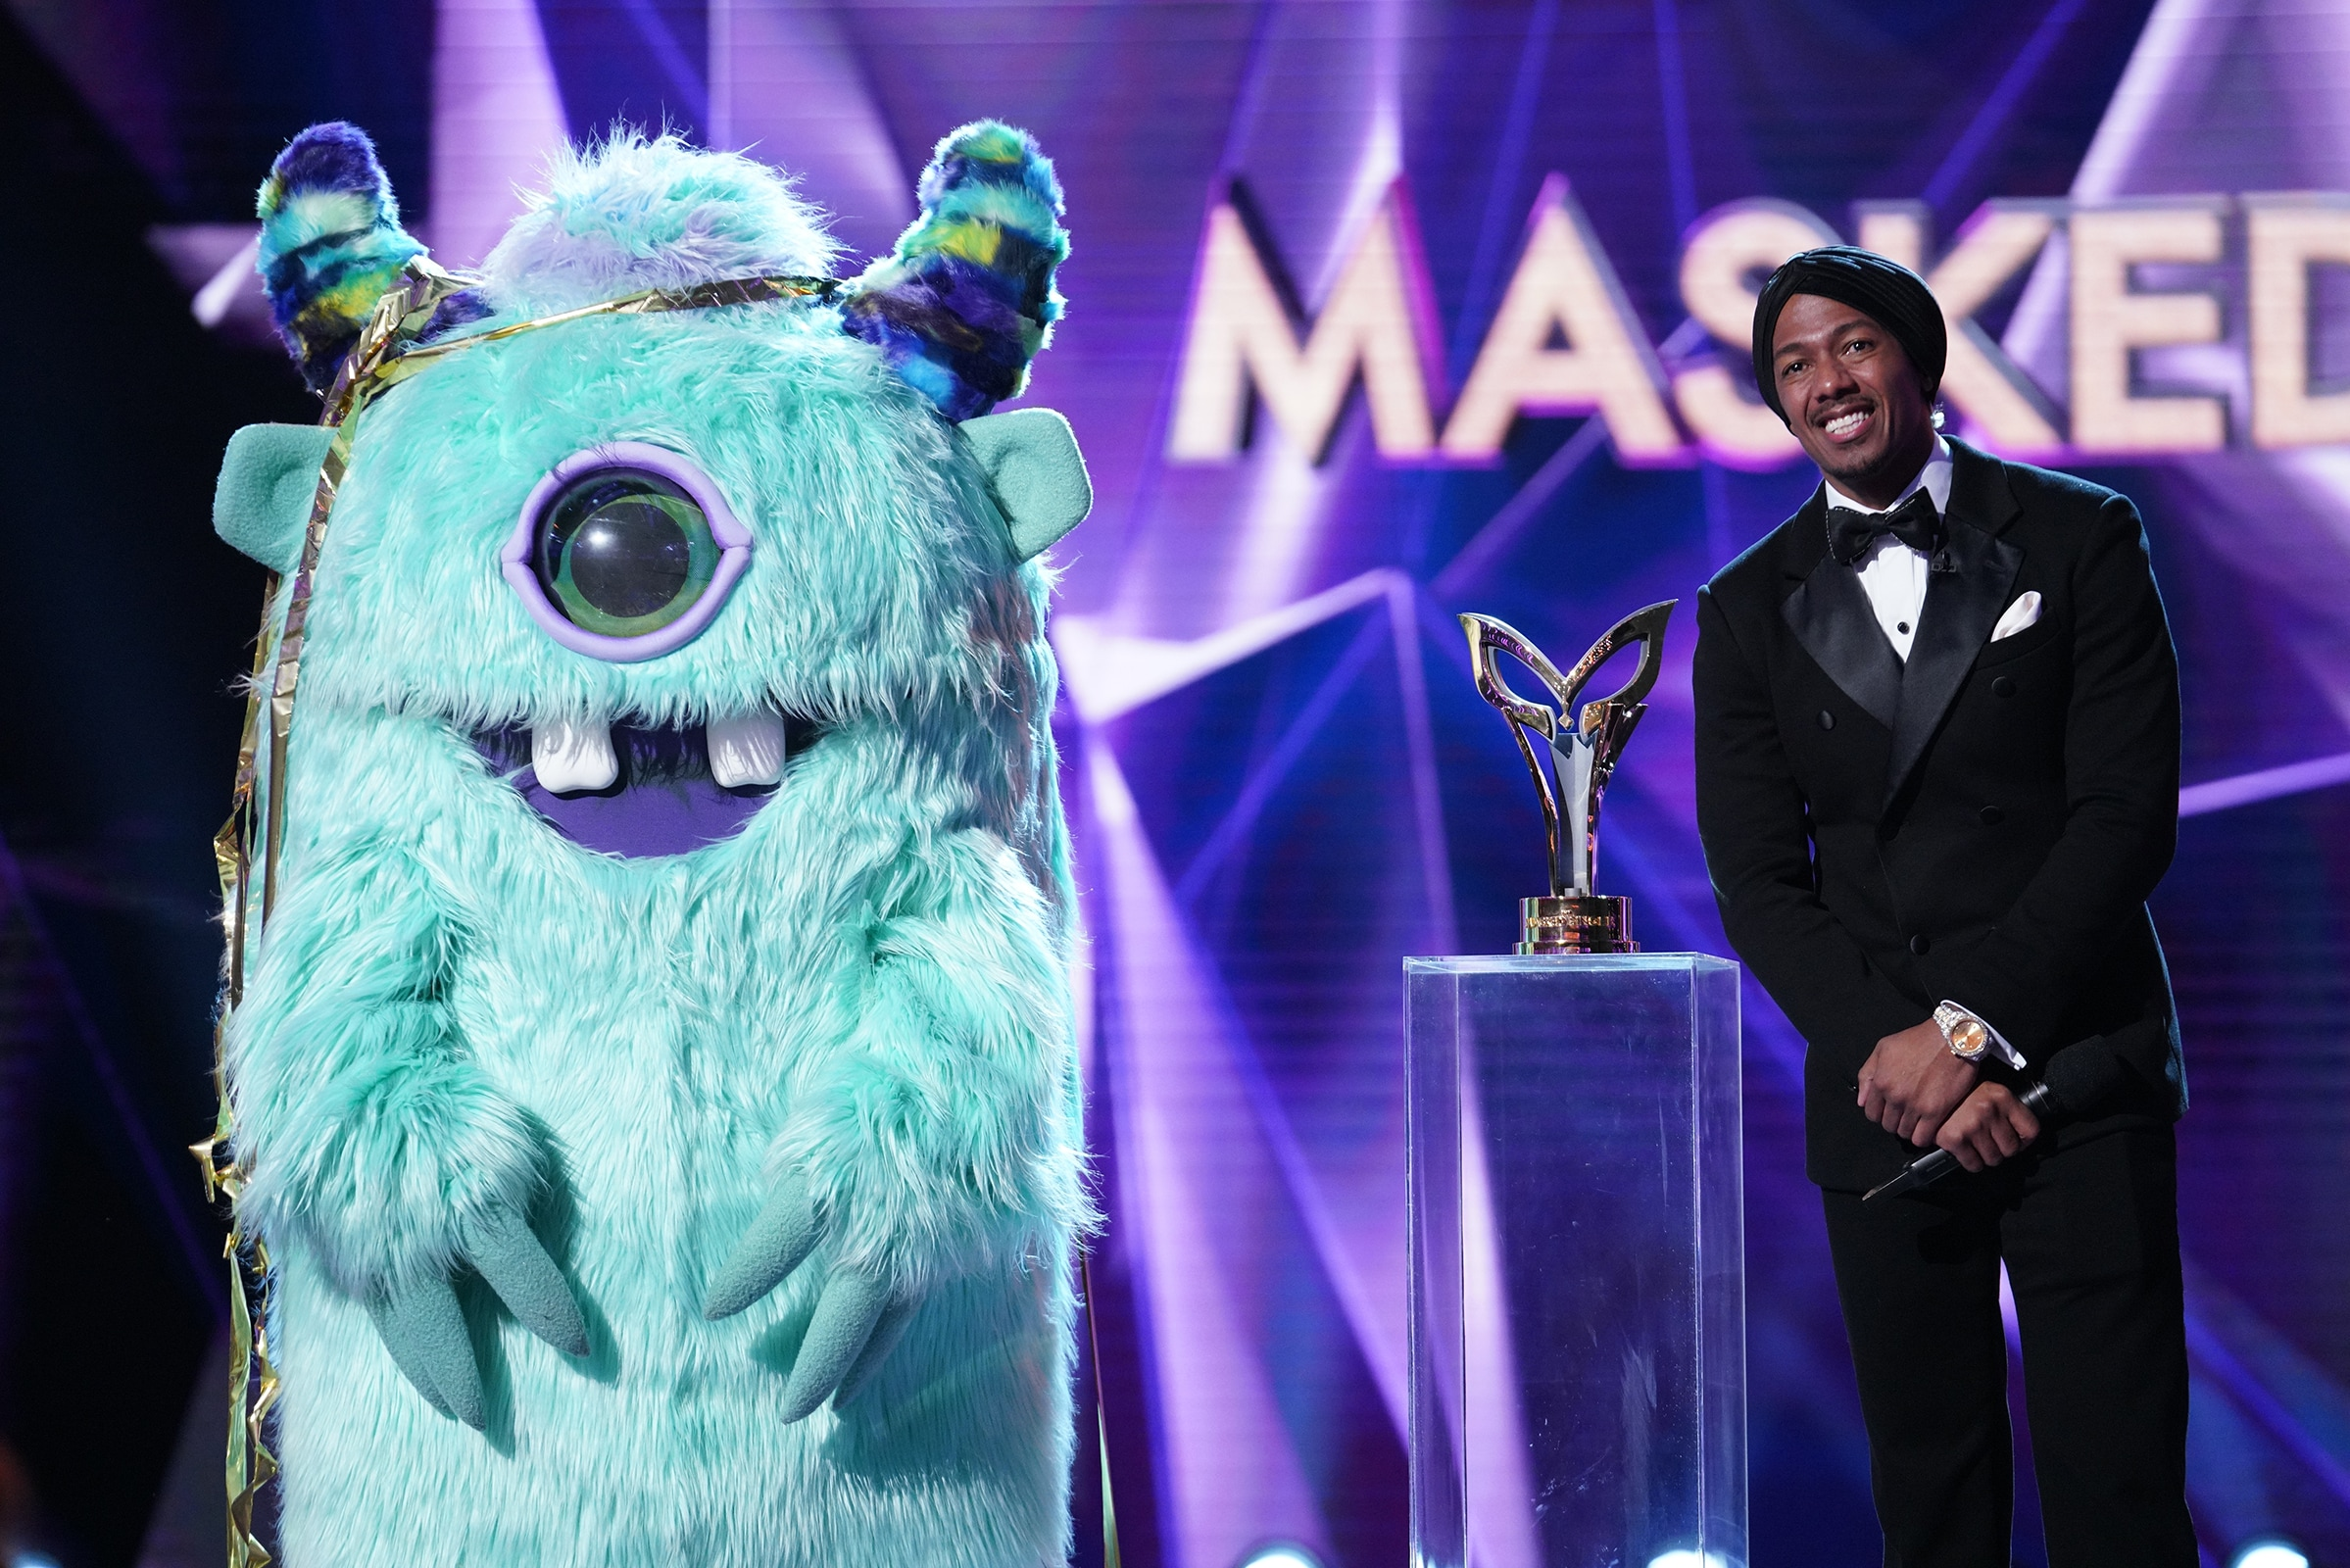 The Masked Singer Monster